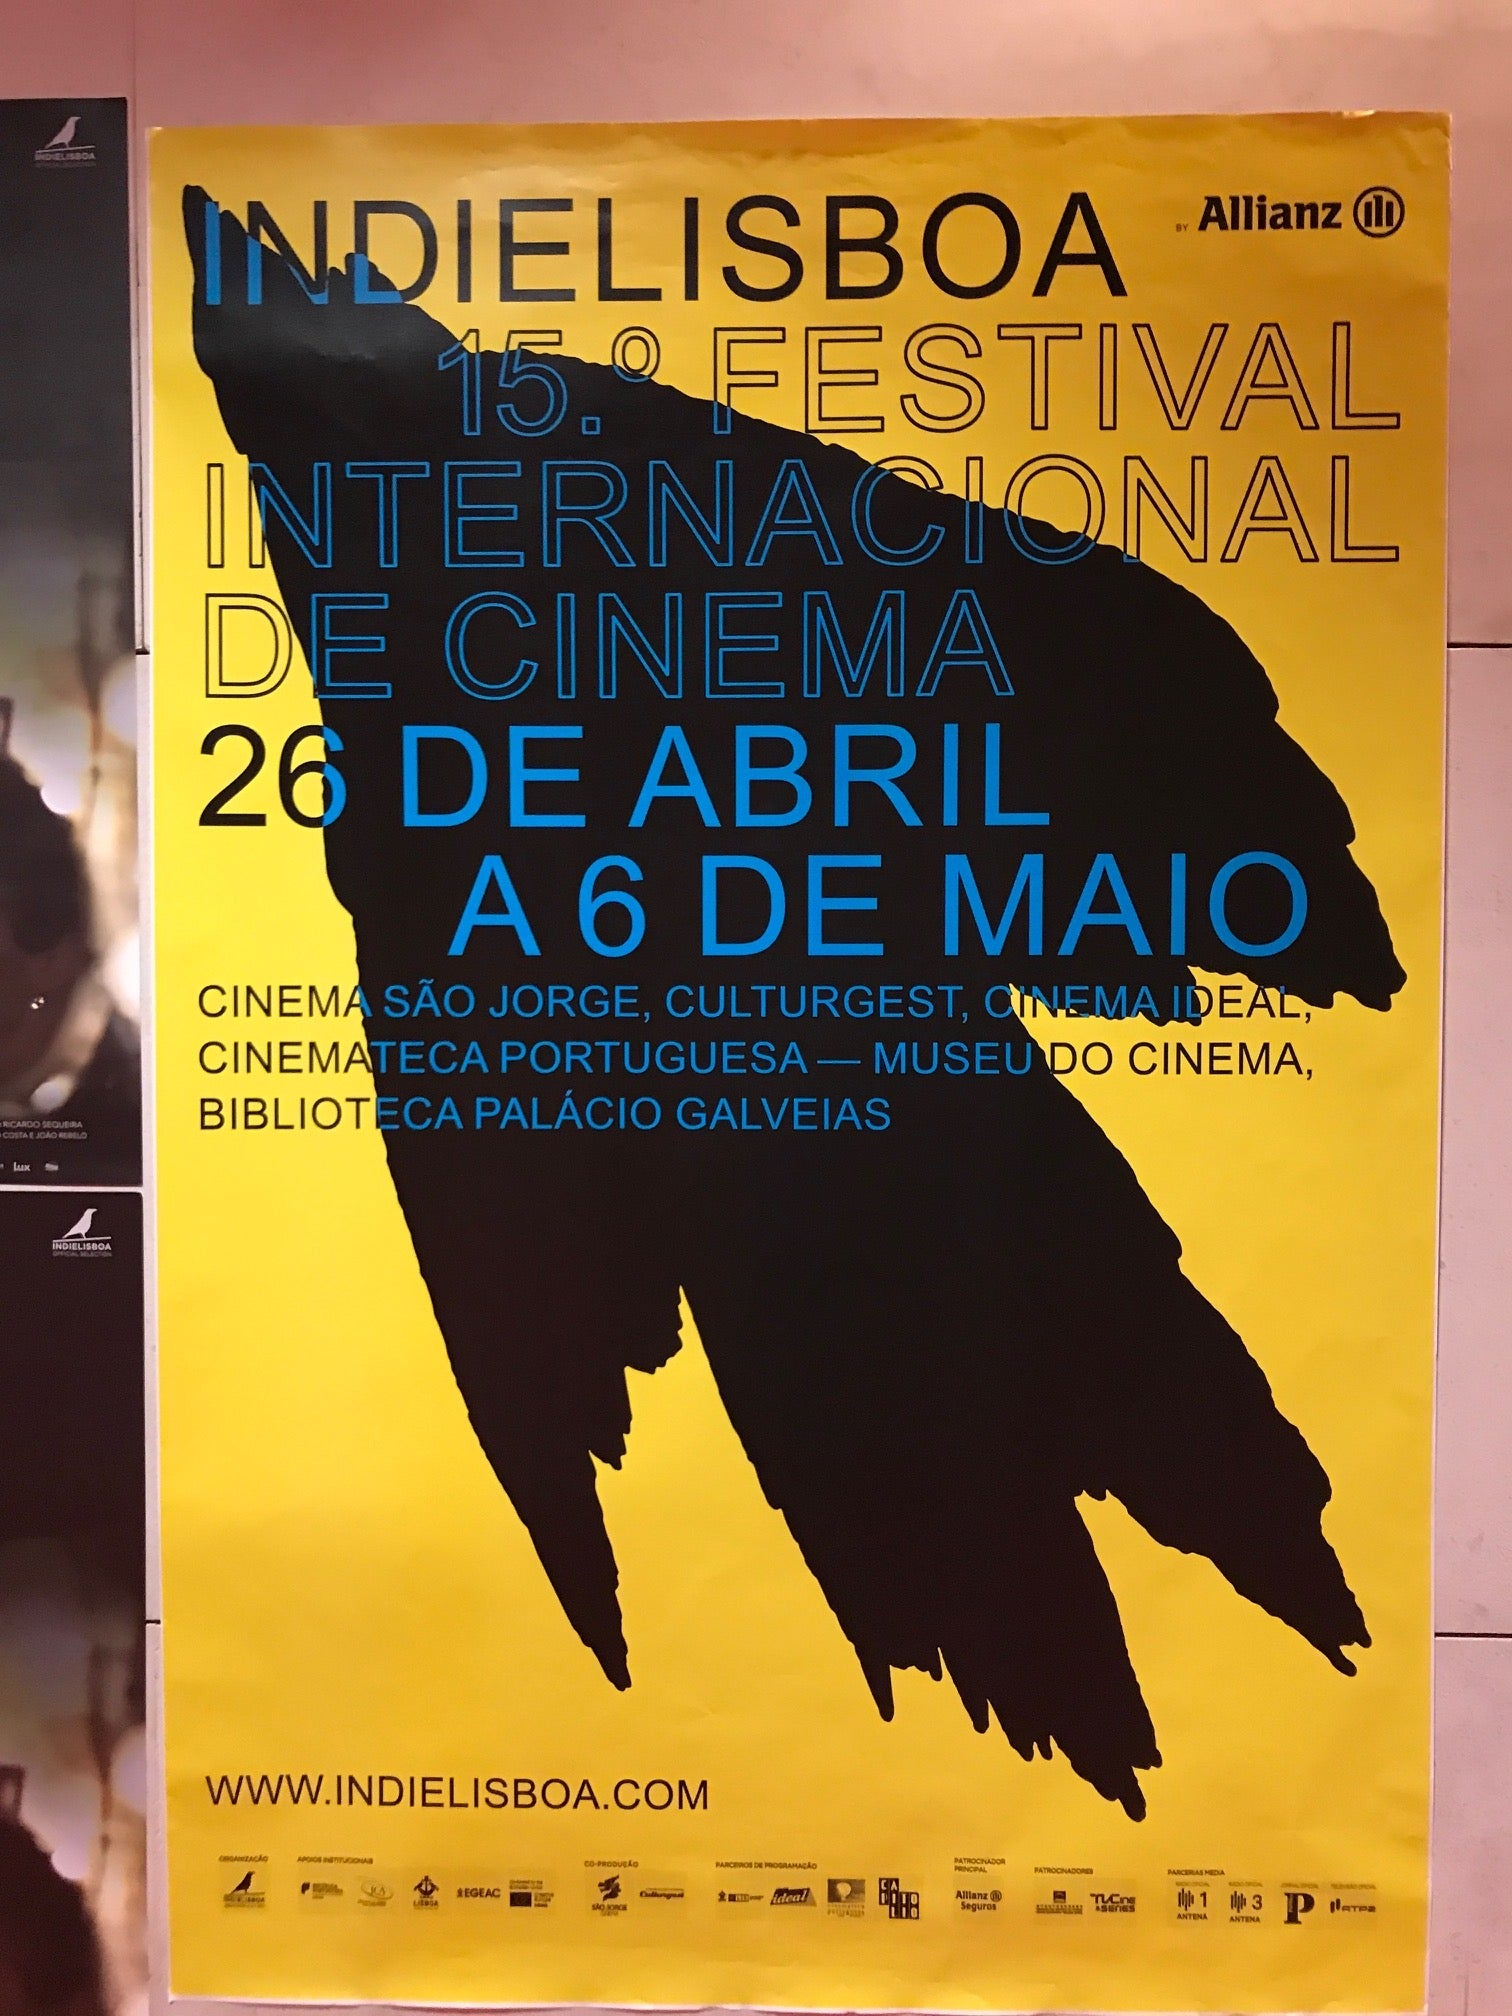 POster  for the 15th Indie Lsboa Film festival